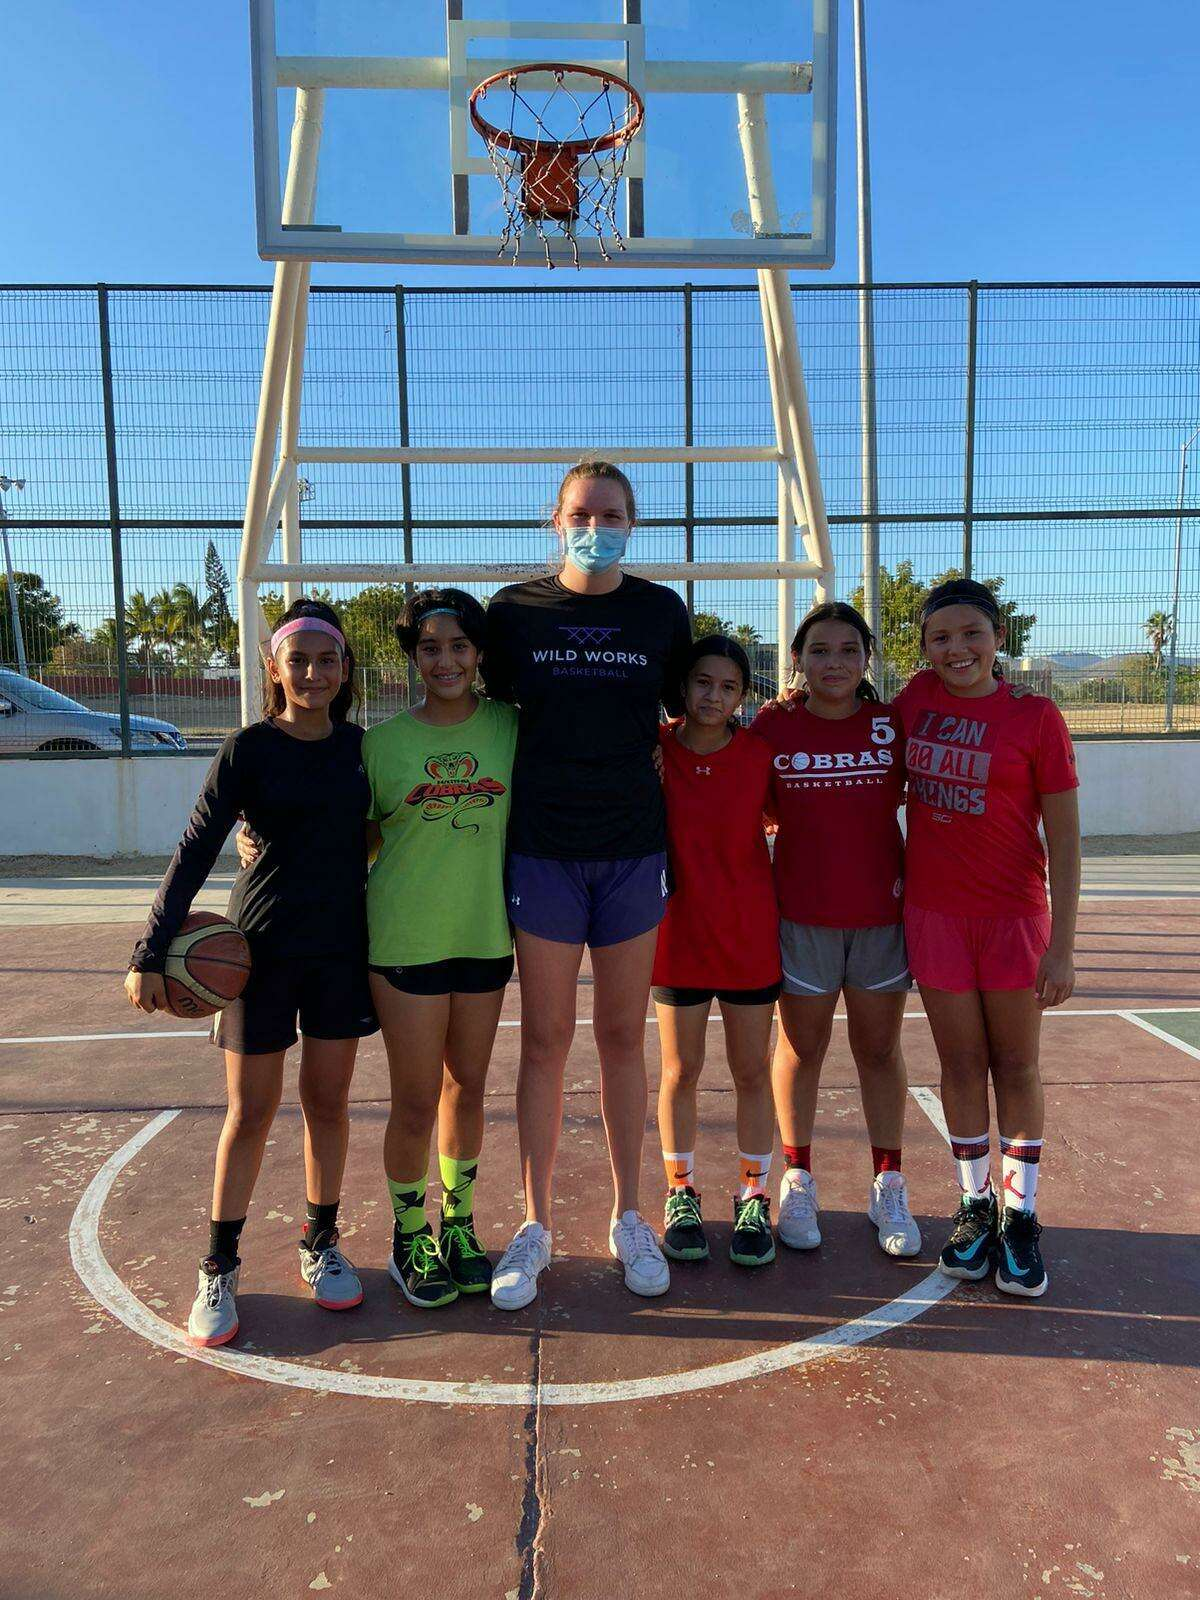 Abbie Wolf of Greenwich ran a clinic two days a week for a month in San Jose de Cabo, Mexico with the Cobras de Cabo.